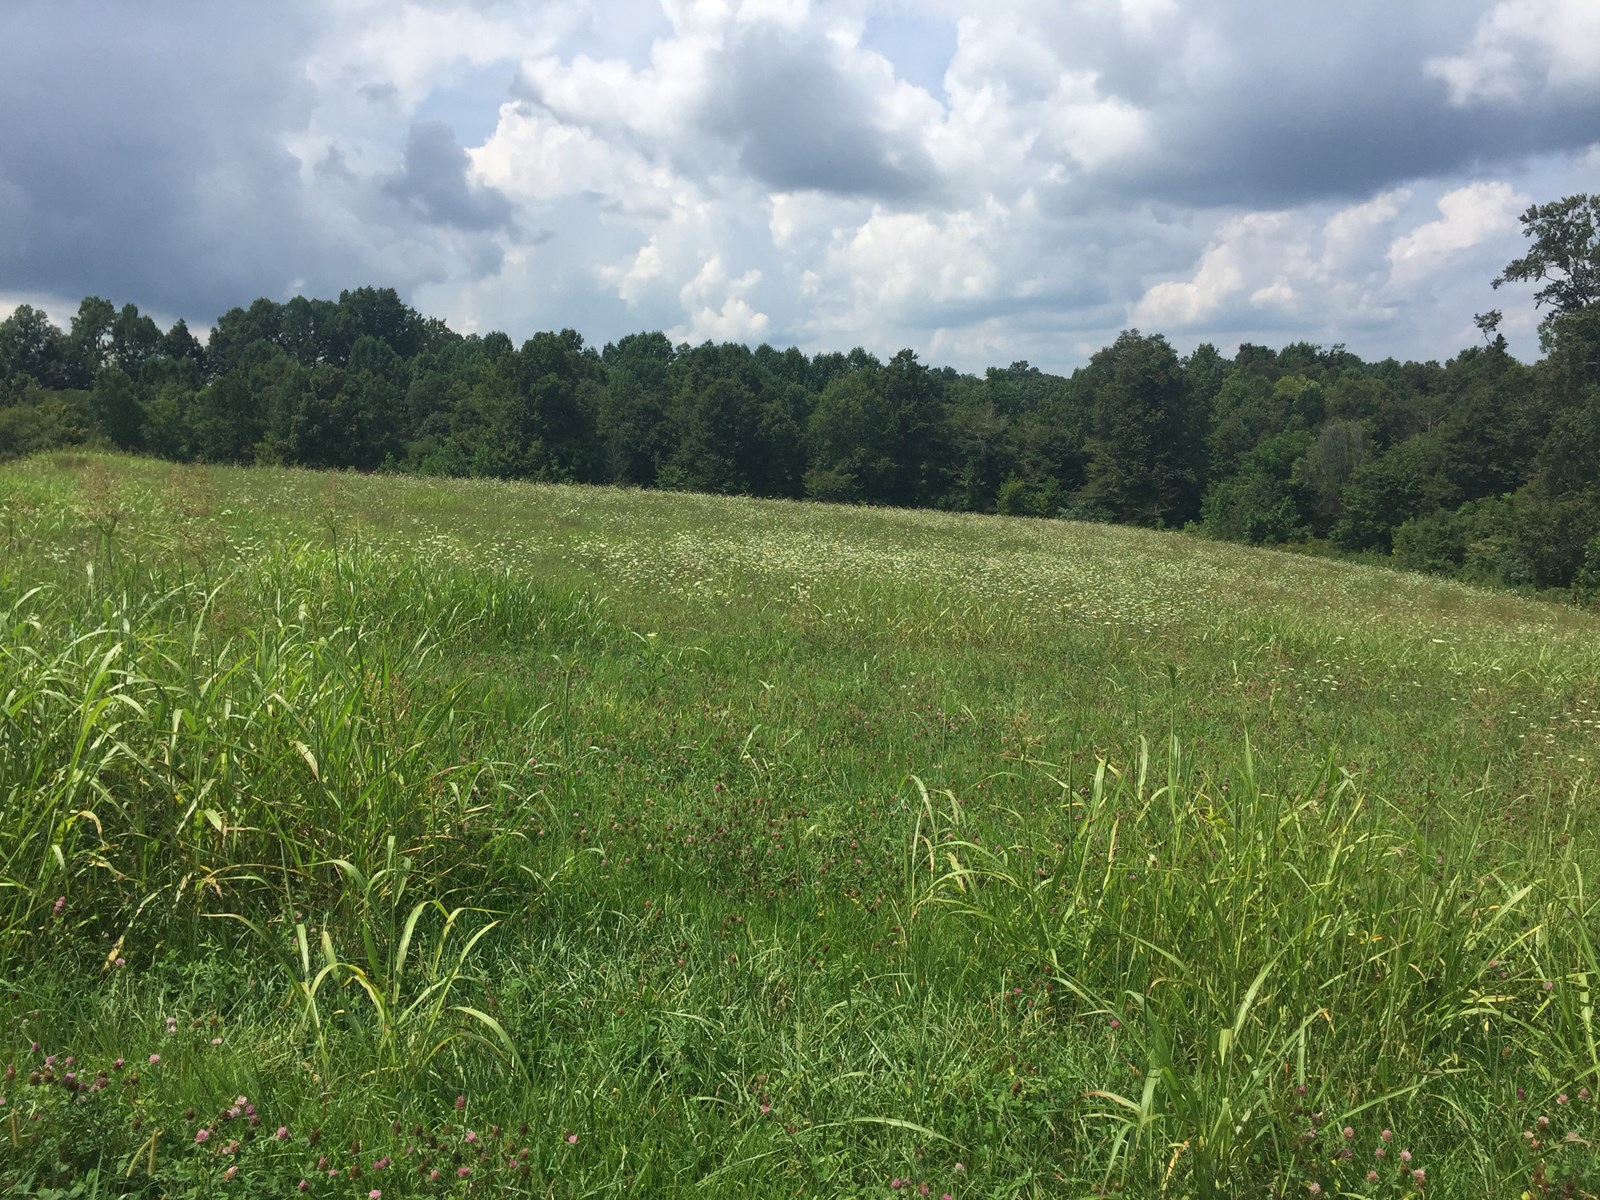 6.51 Acres / Building Site / Private - Liberty, Kentucky